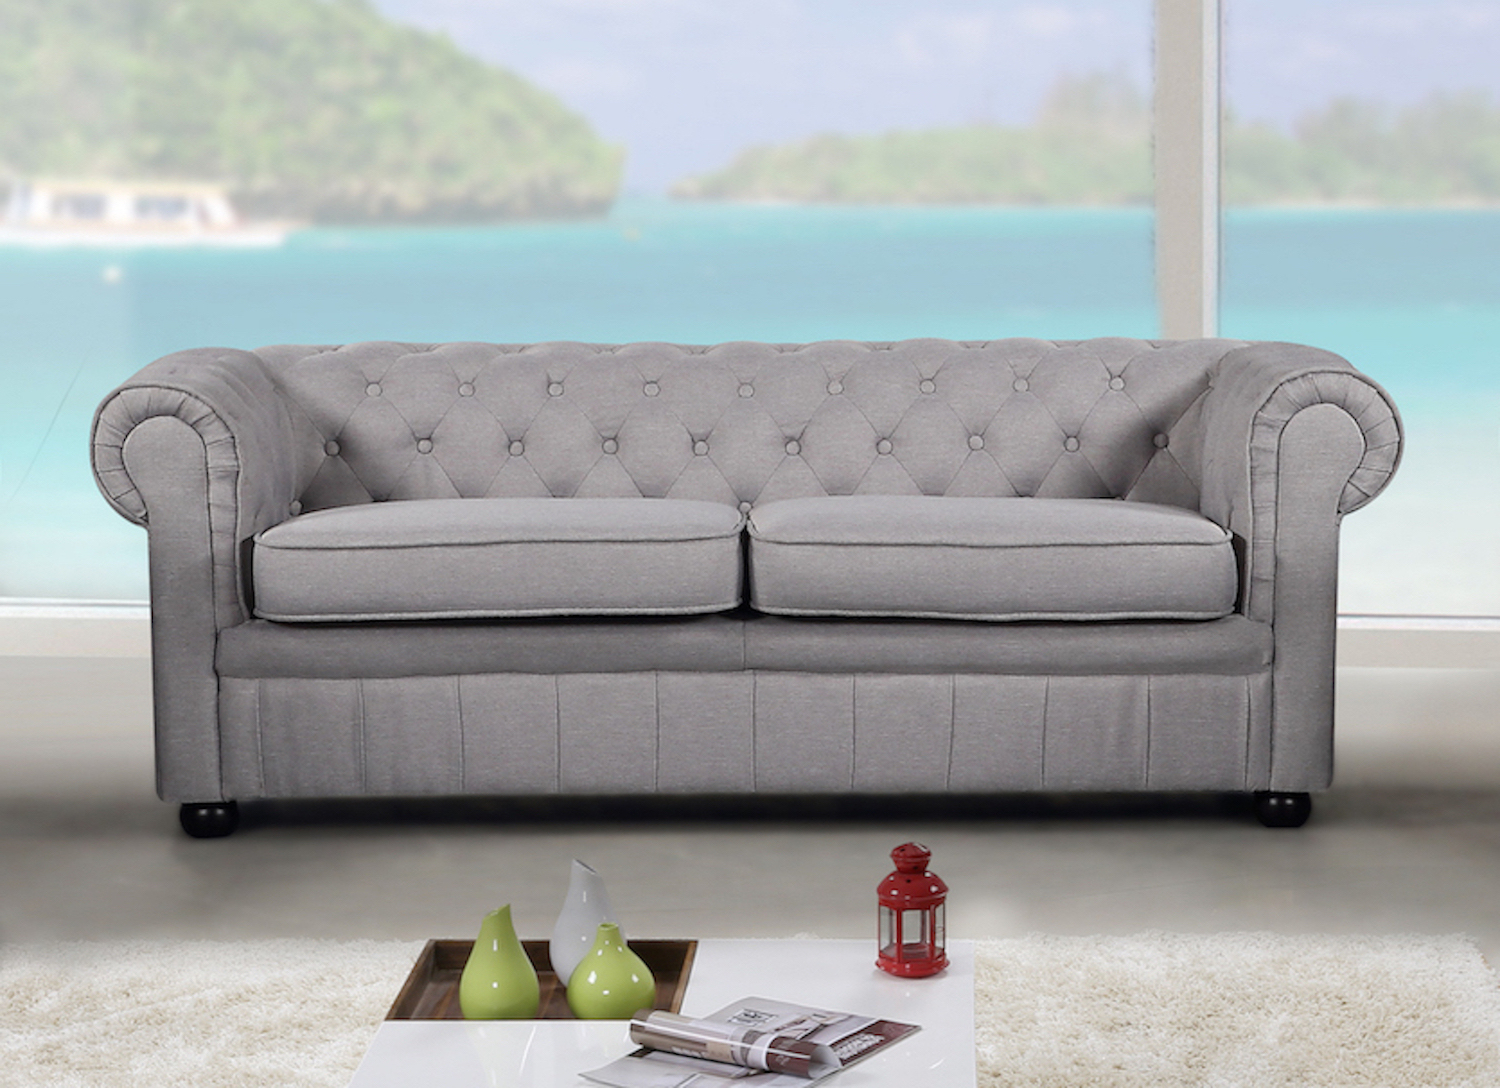 Popular Modern Chesterfield Style Sofa – Light Grey Fabric Intended For Ludovic Contemporary Sofas Light Gray (View 11 of 25)